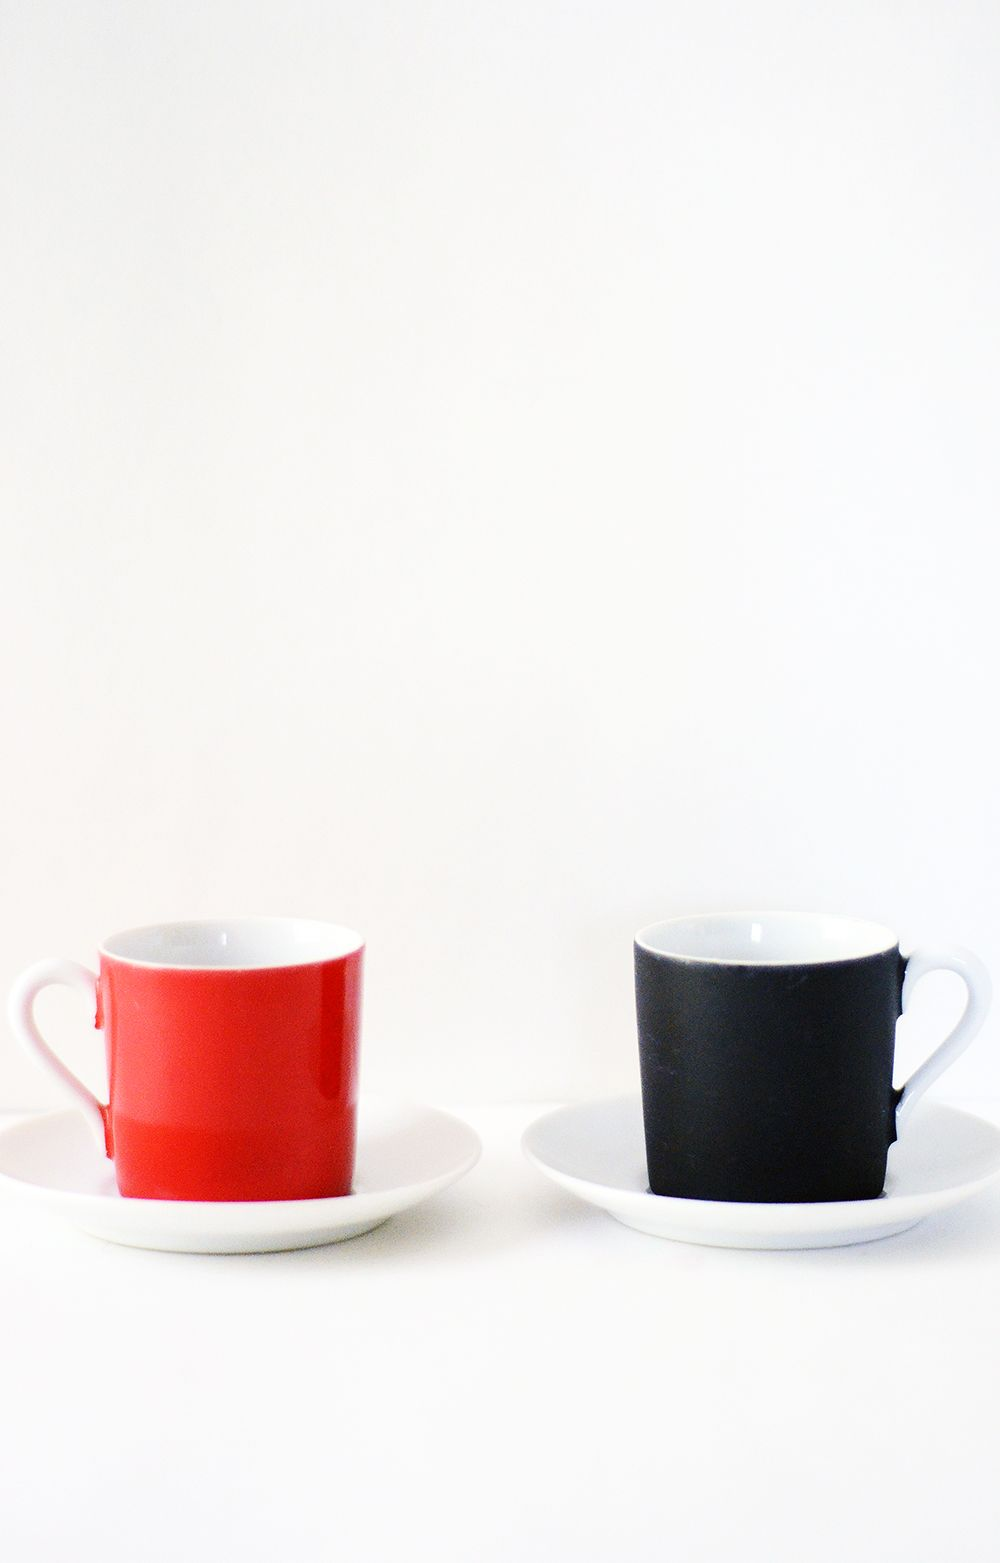 Vintage red black and white espresso cups and saucers set retro chic minimalist